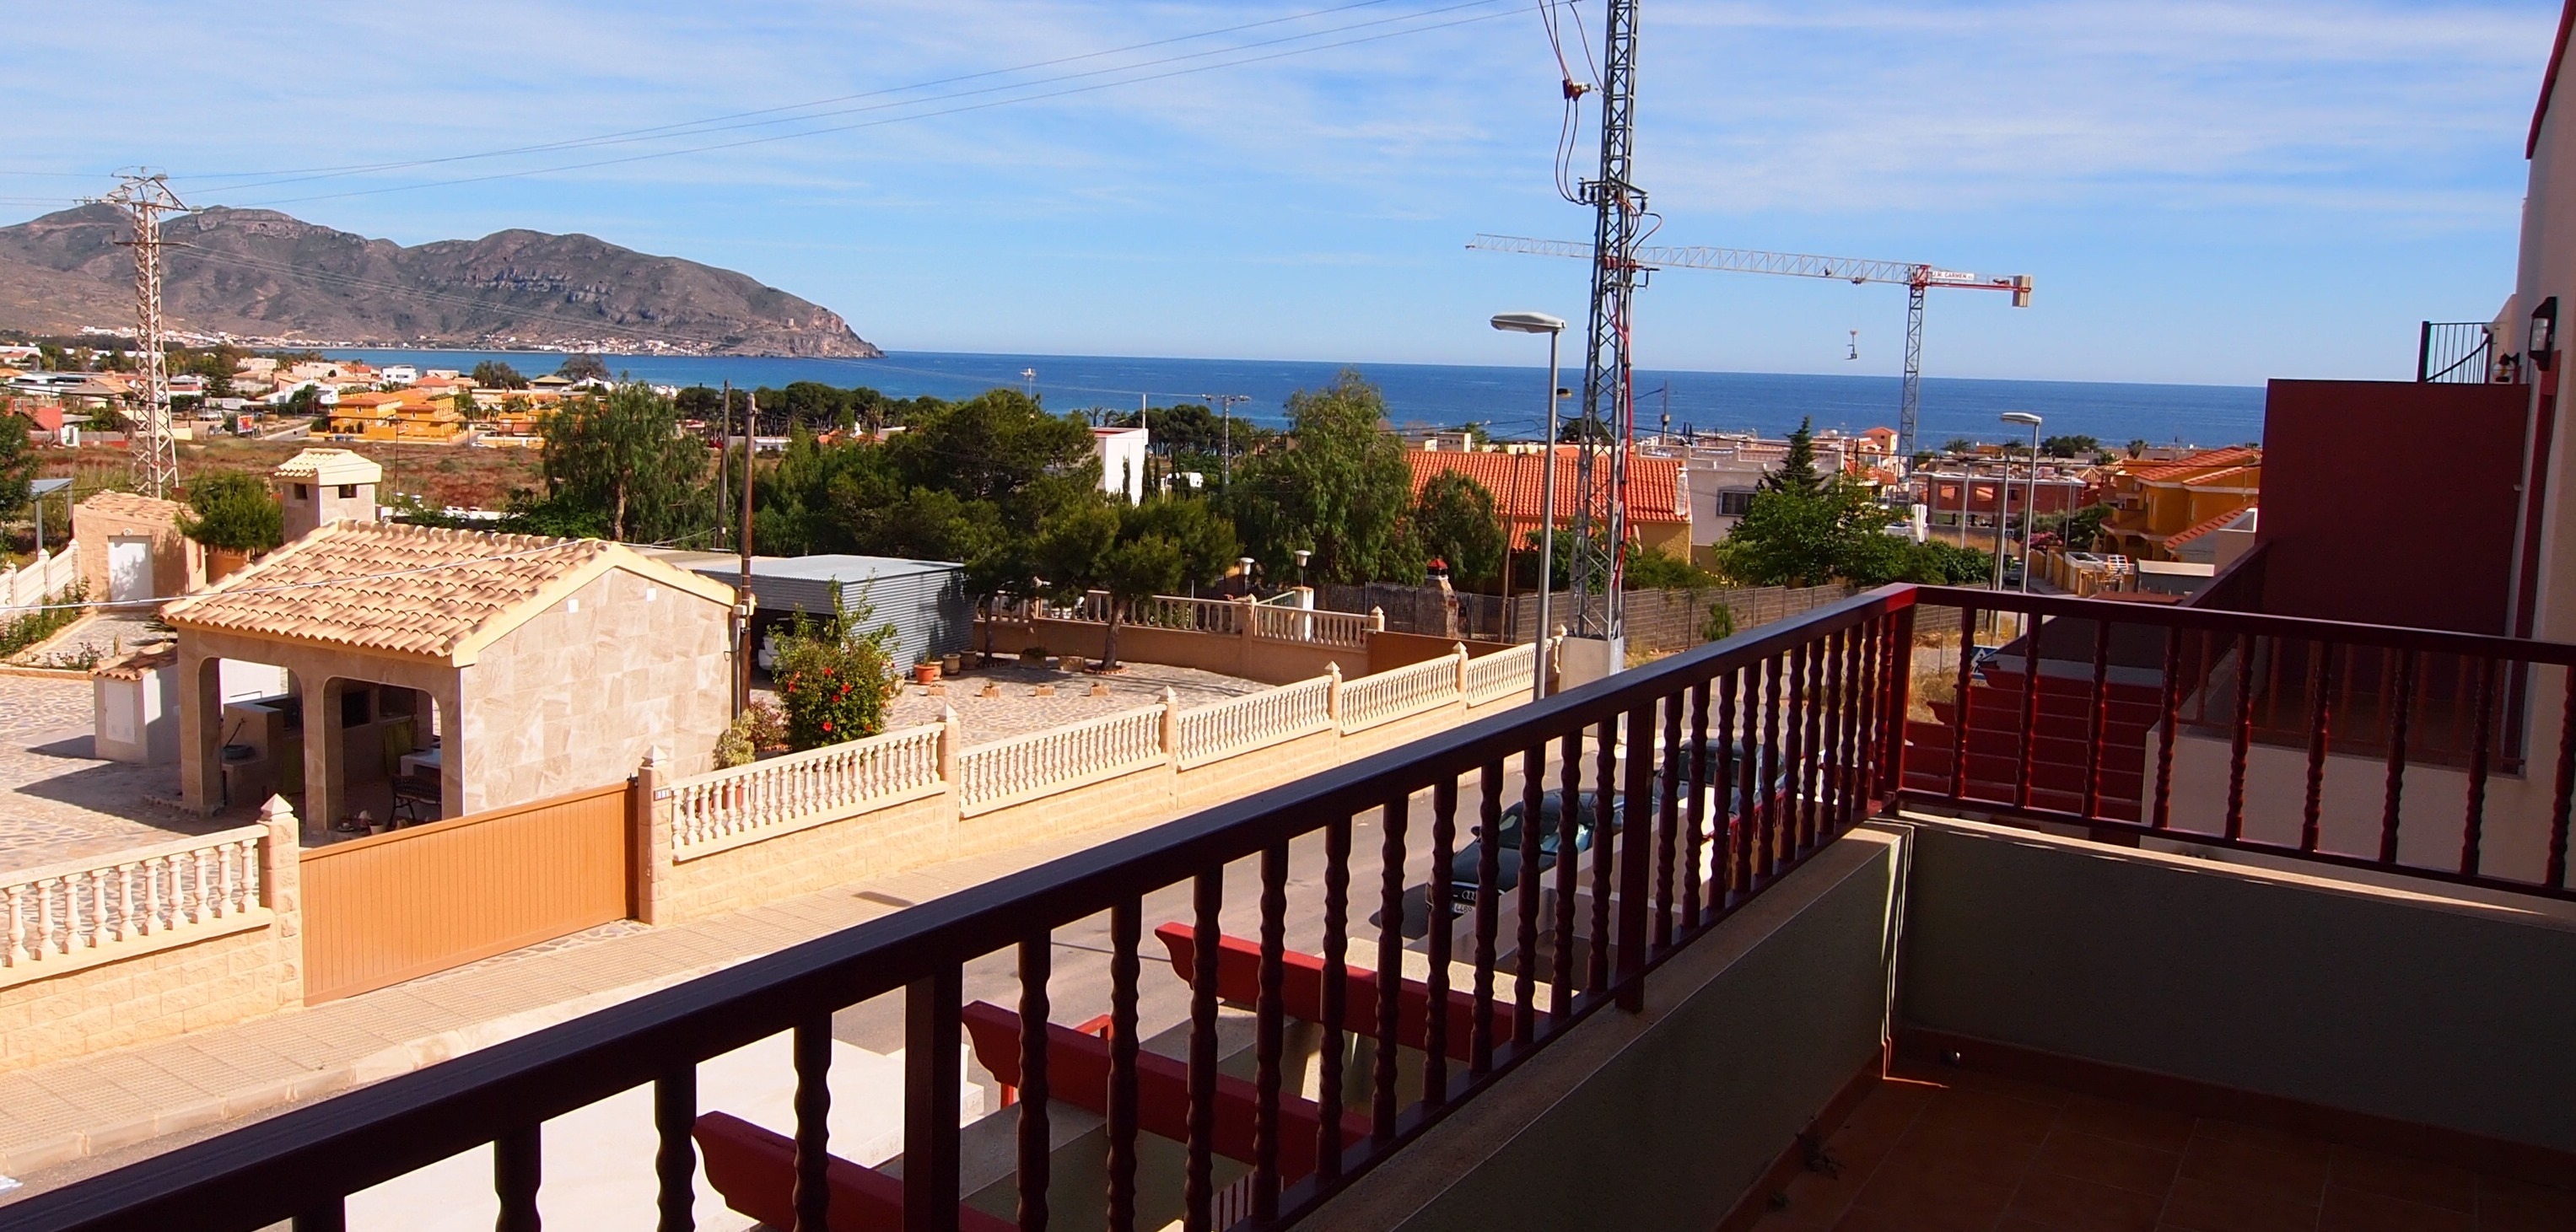 283. HOME DUPLEX 3 BEDS 2 BATHS – CENTER – NEW – SEA VIEWS FROM SOLARIUM AND TERRACE